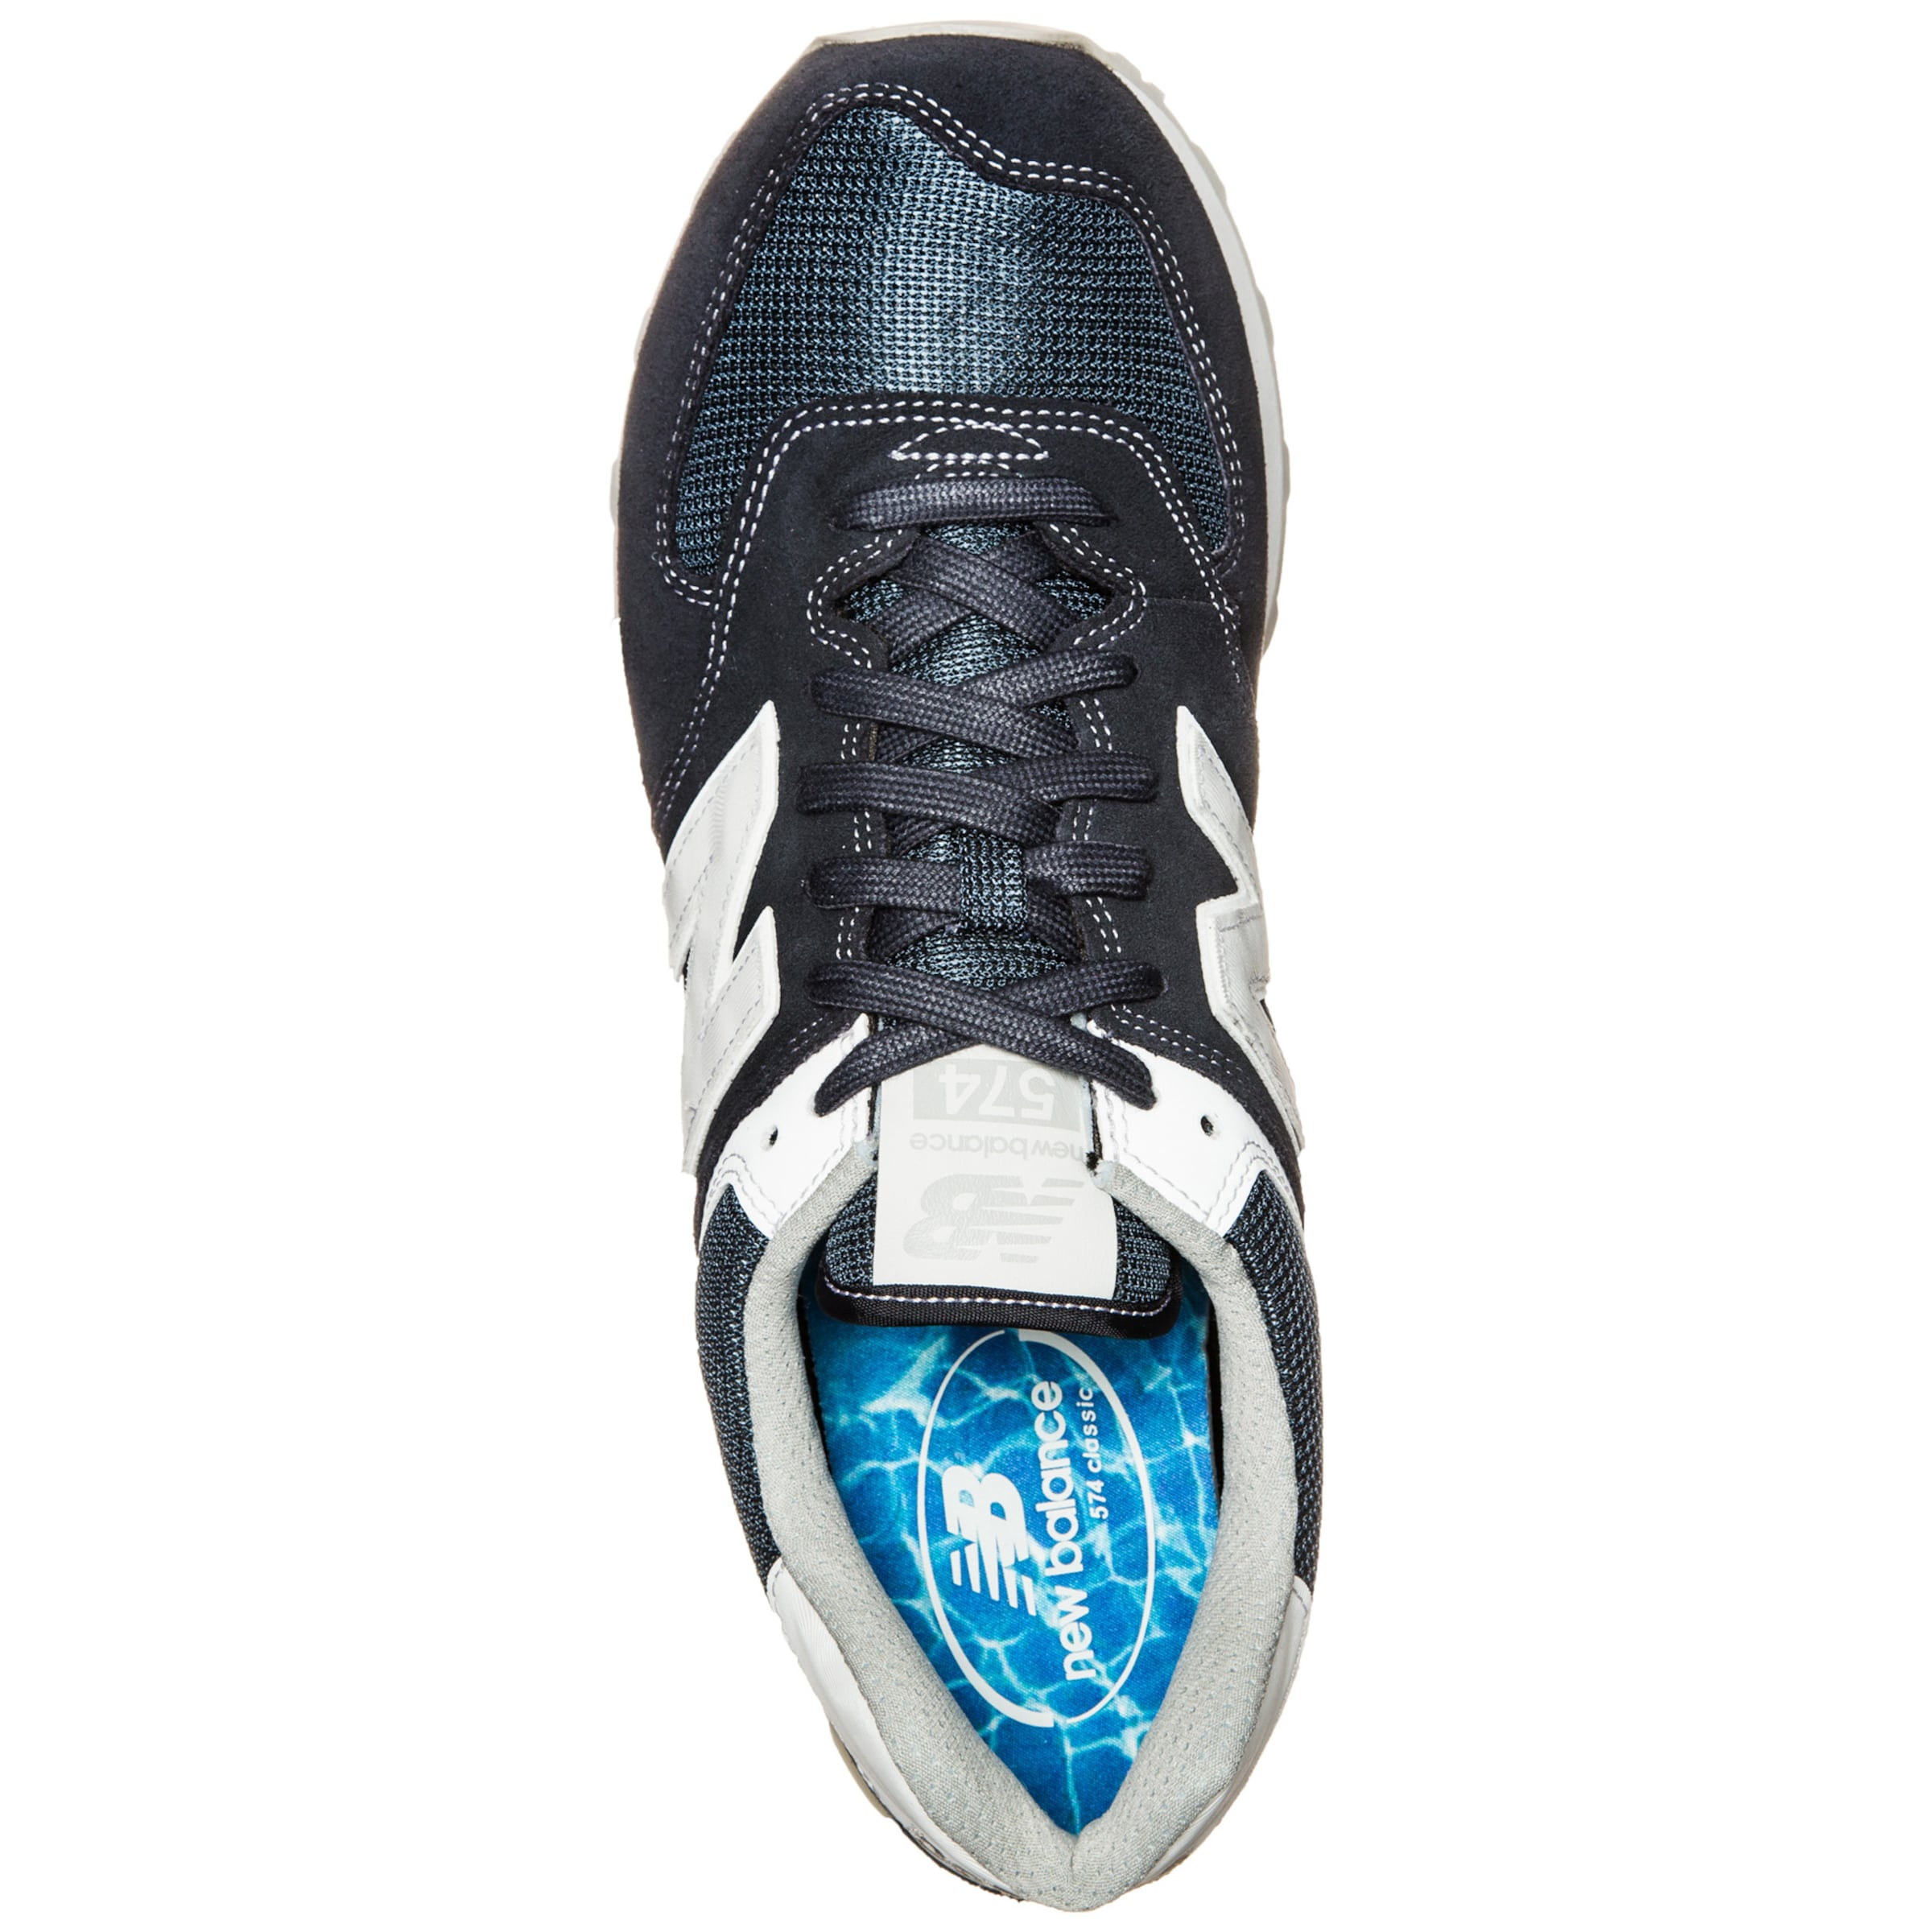 'ml574 In Blau see Balance New d' Sneaker QxtsdoCBrh